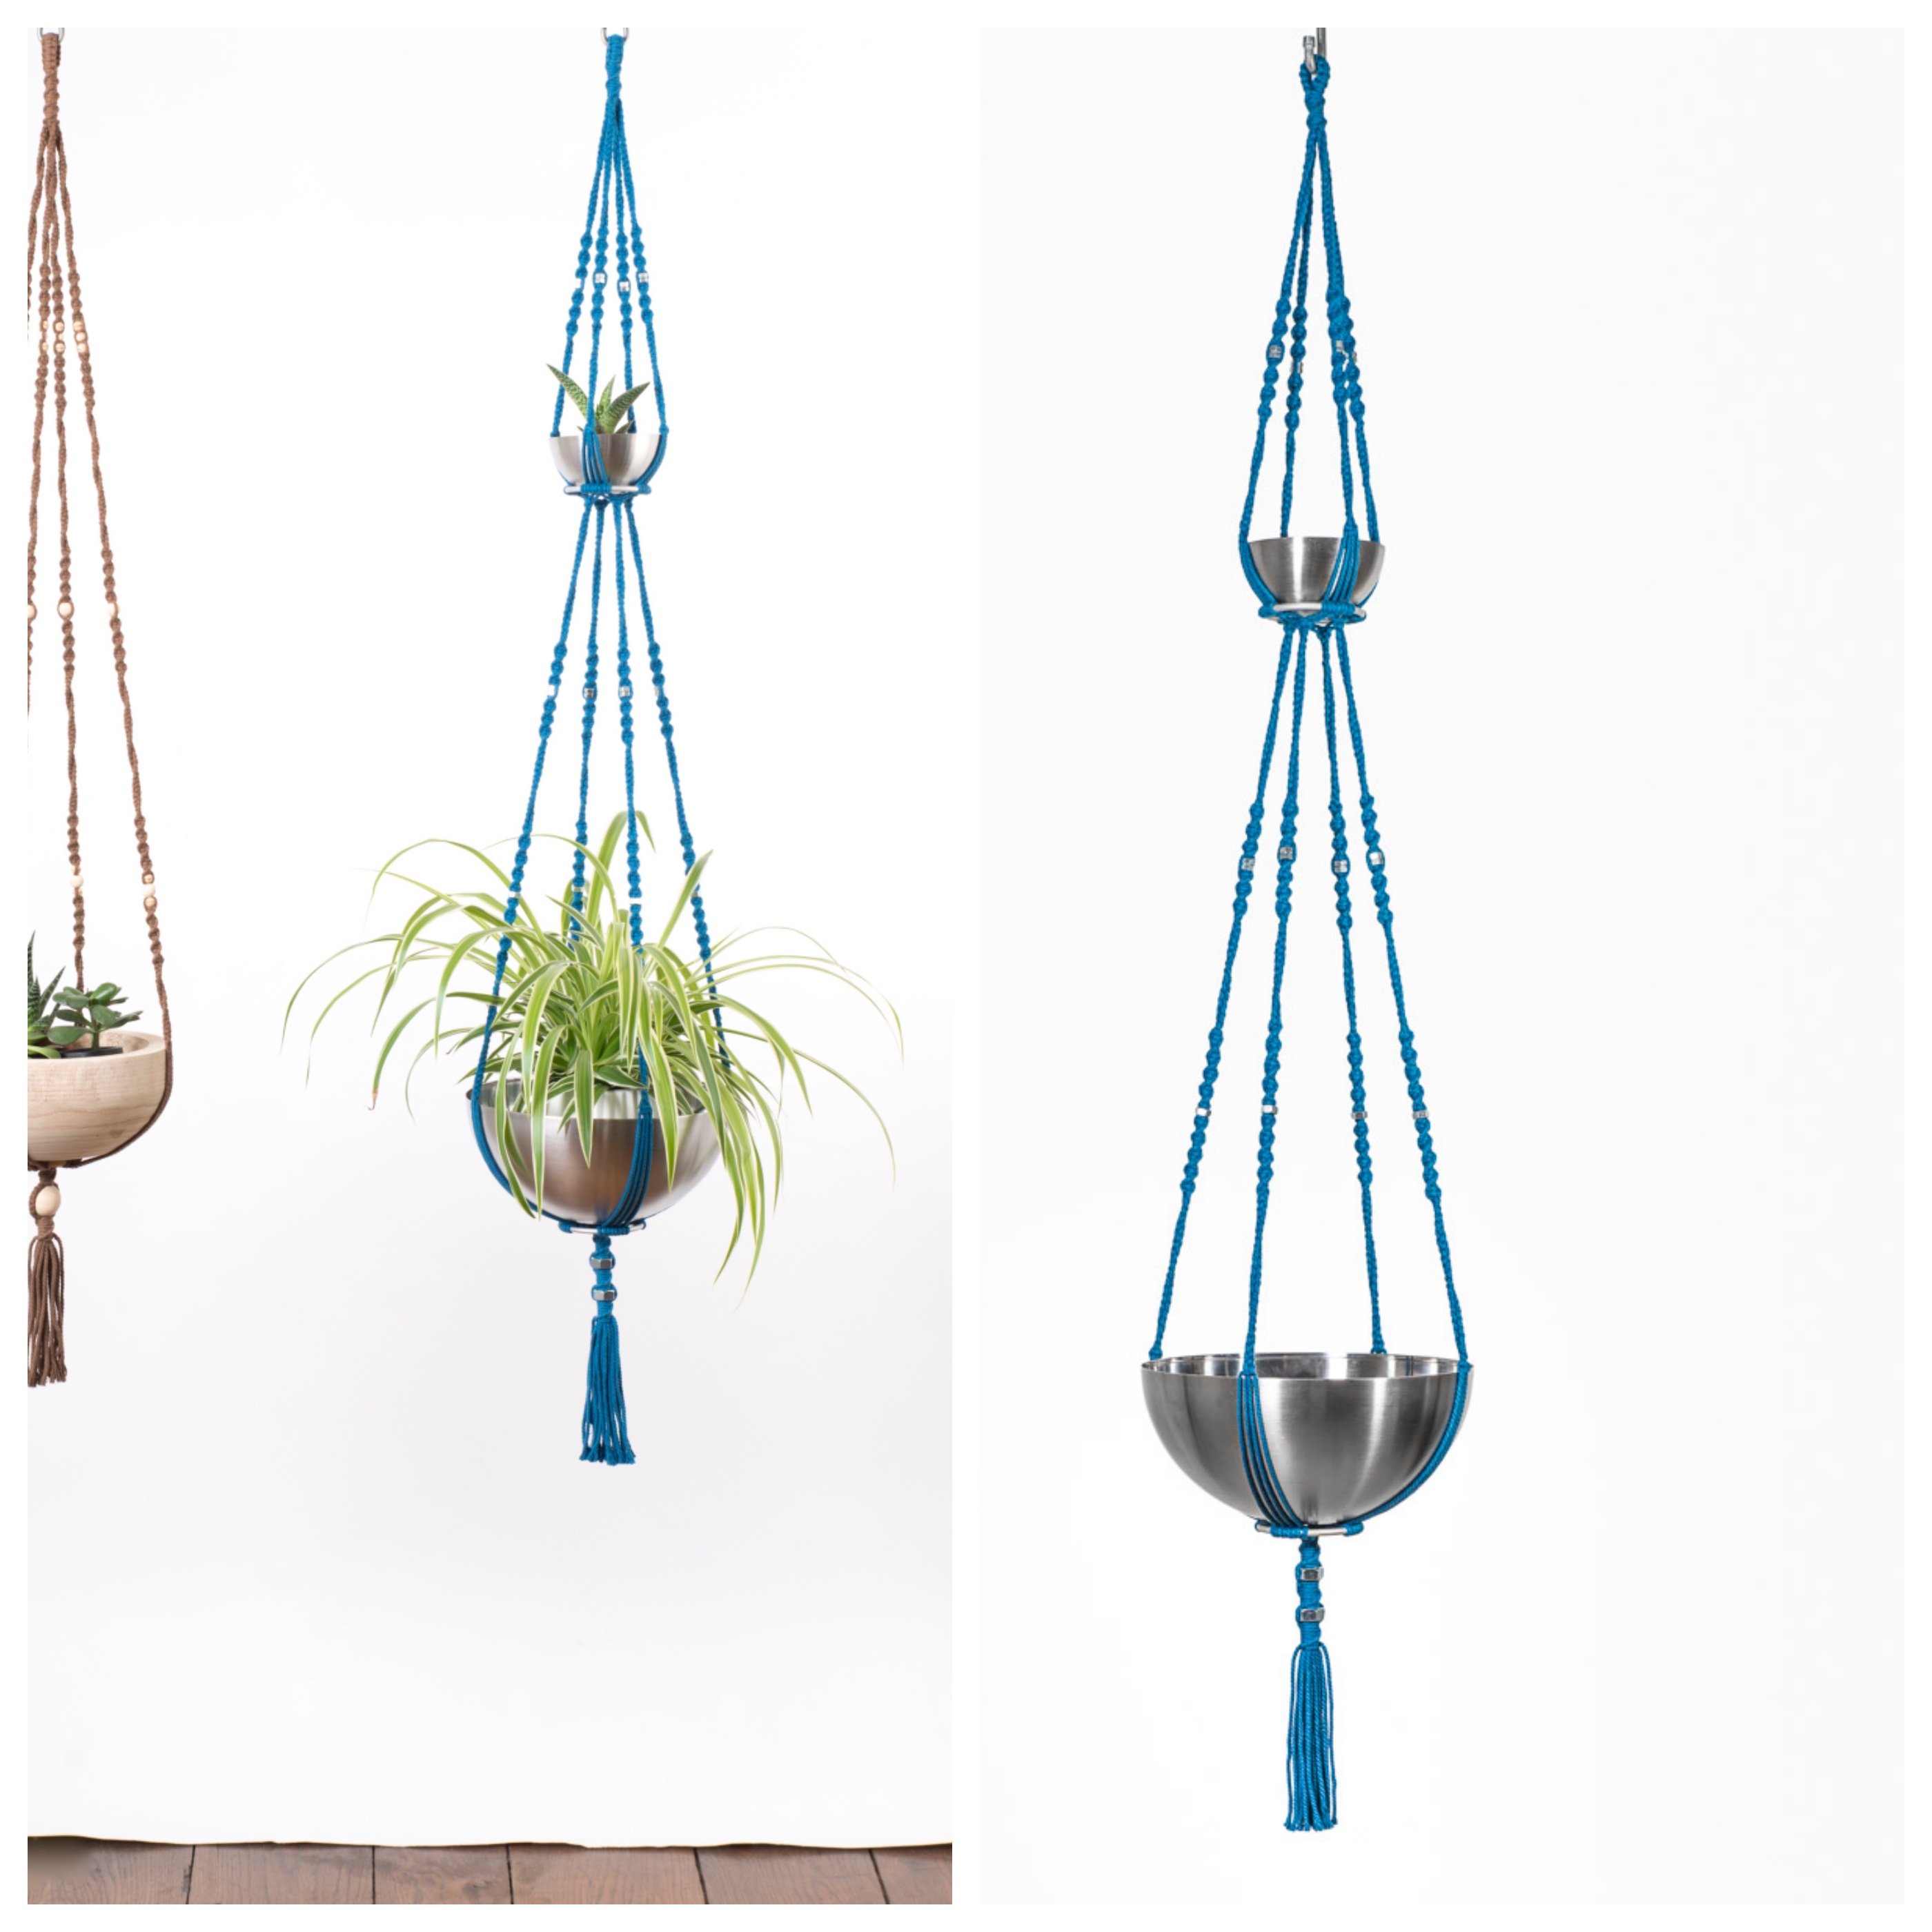 Suspension pour plantes macram bymadjo neptune d co for Suspension pour plante interieur